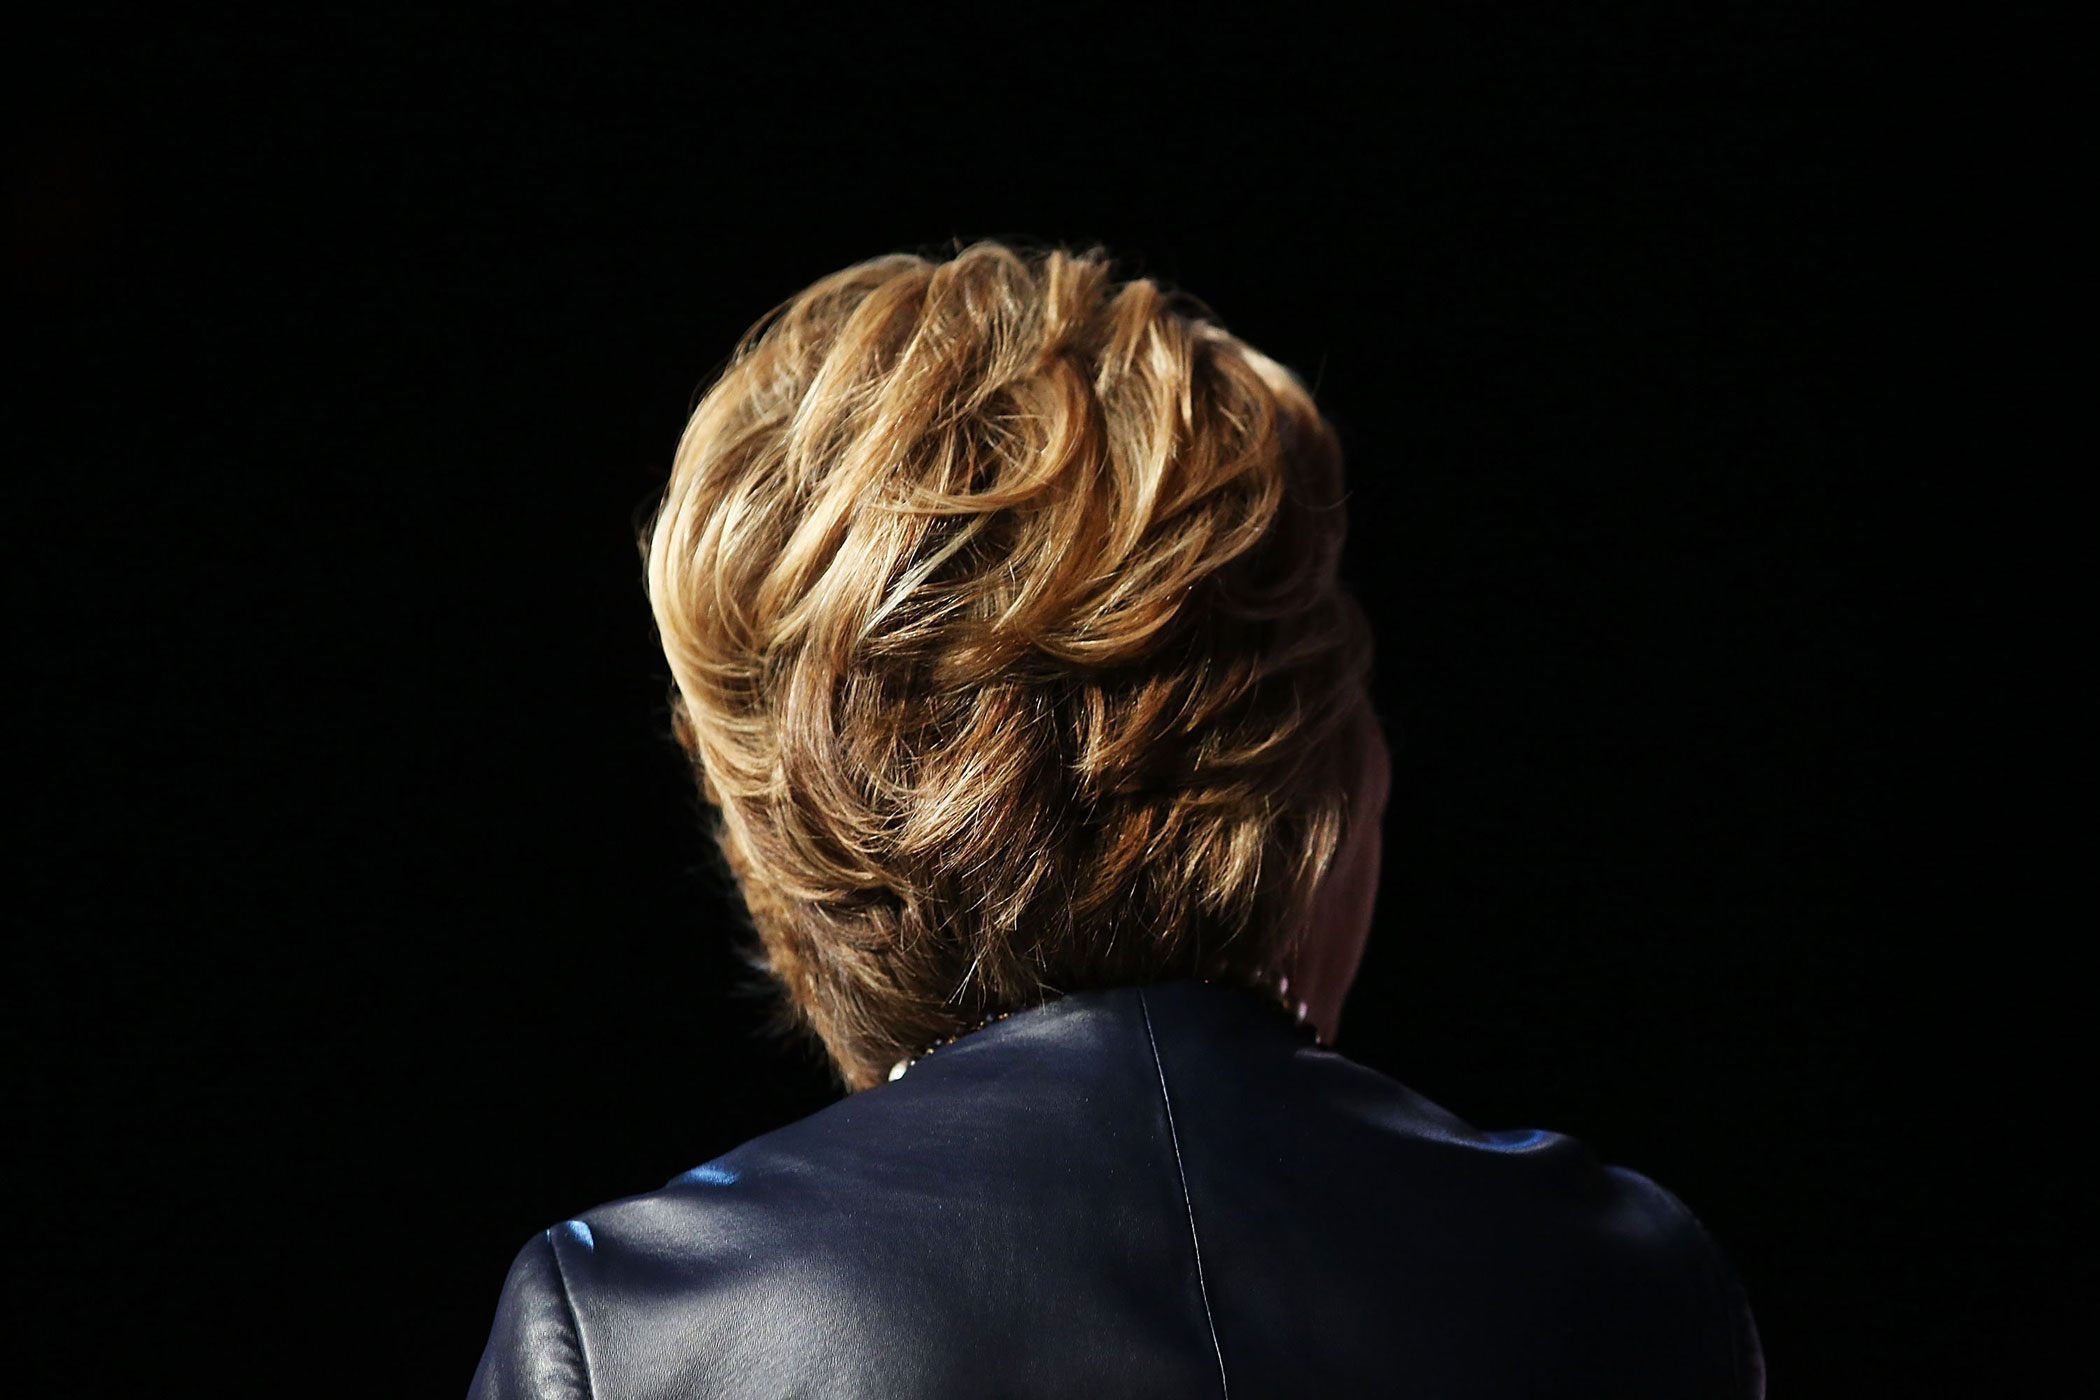 Hillary Clinton speaks on stage in Harlem at the Apollo Theater on March 30, 2016 in New York.